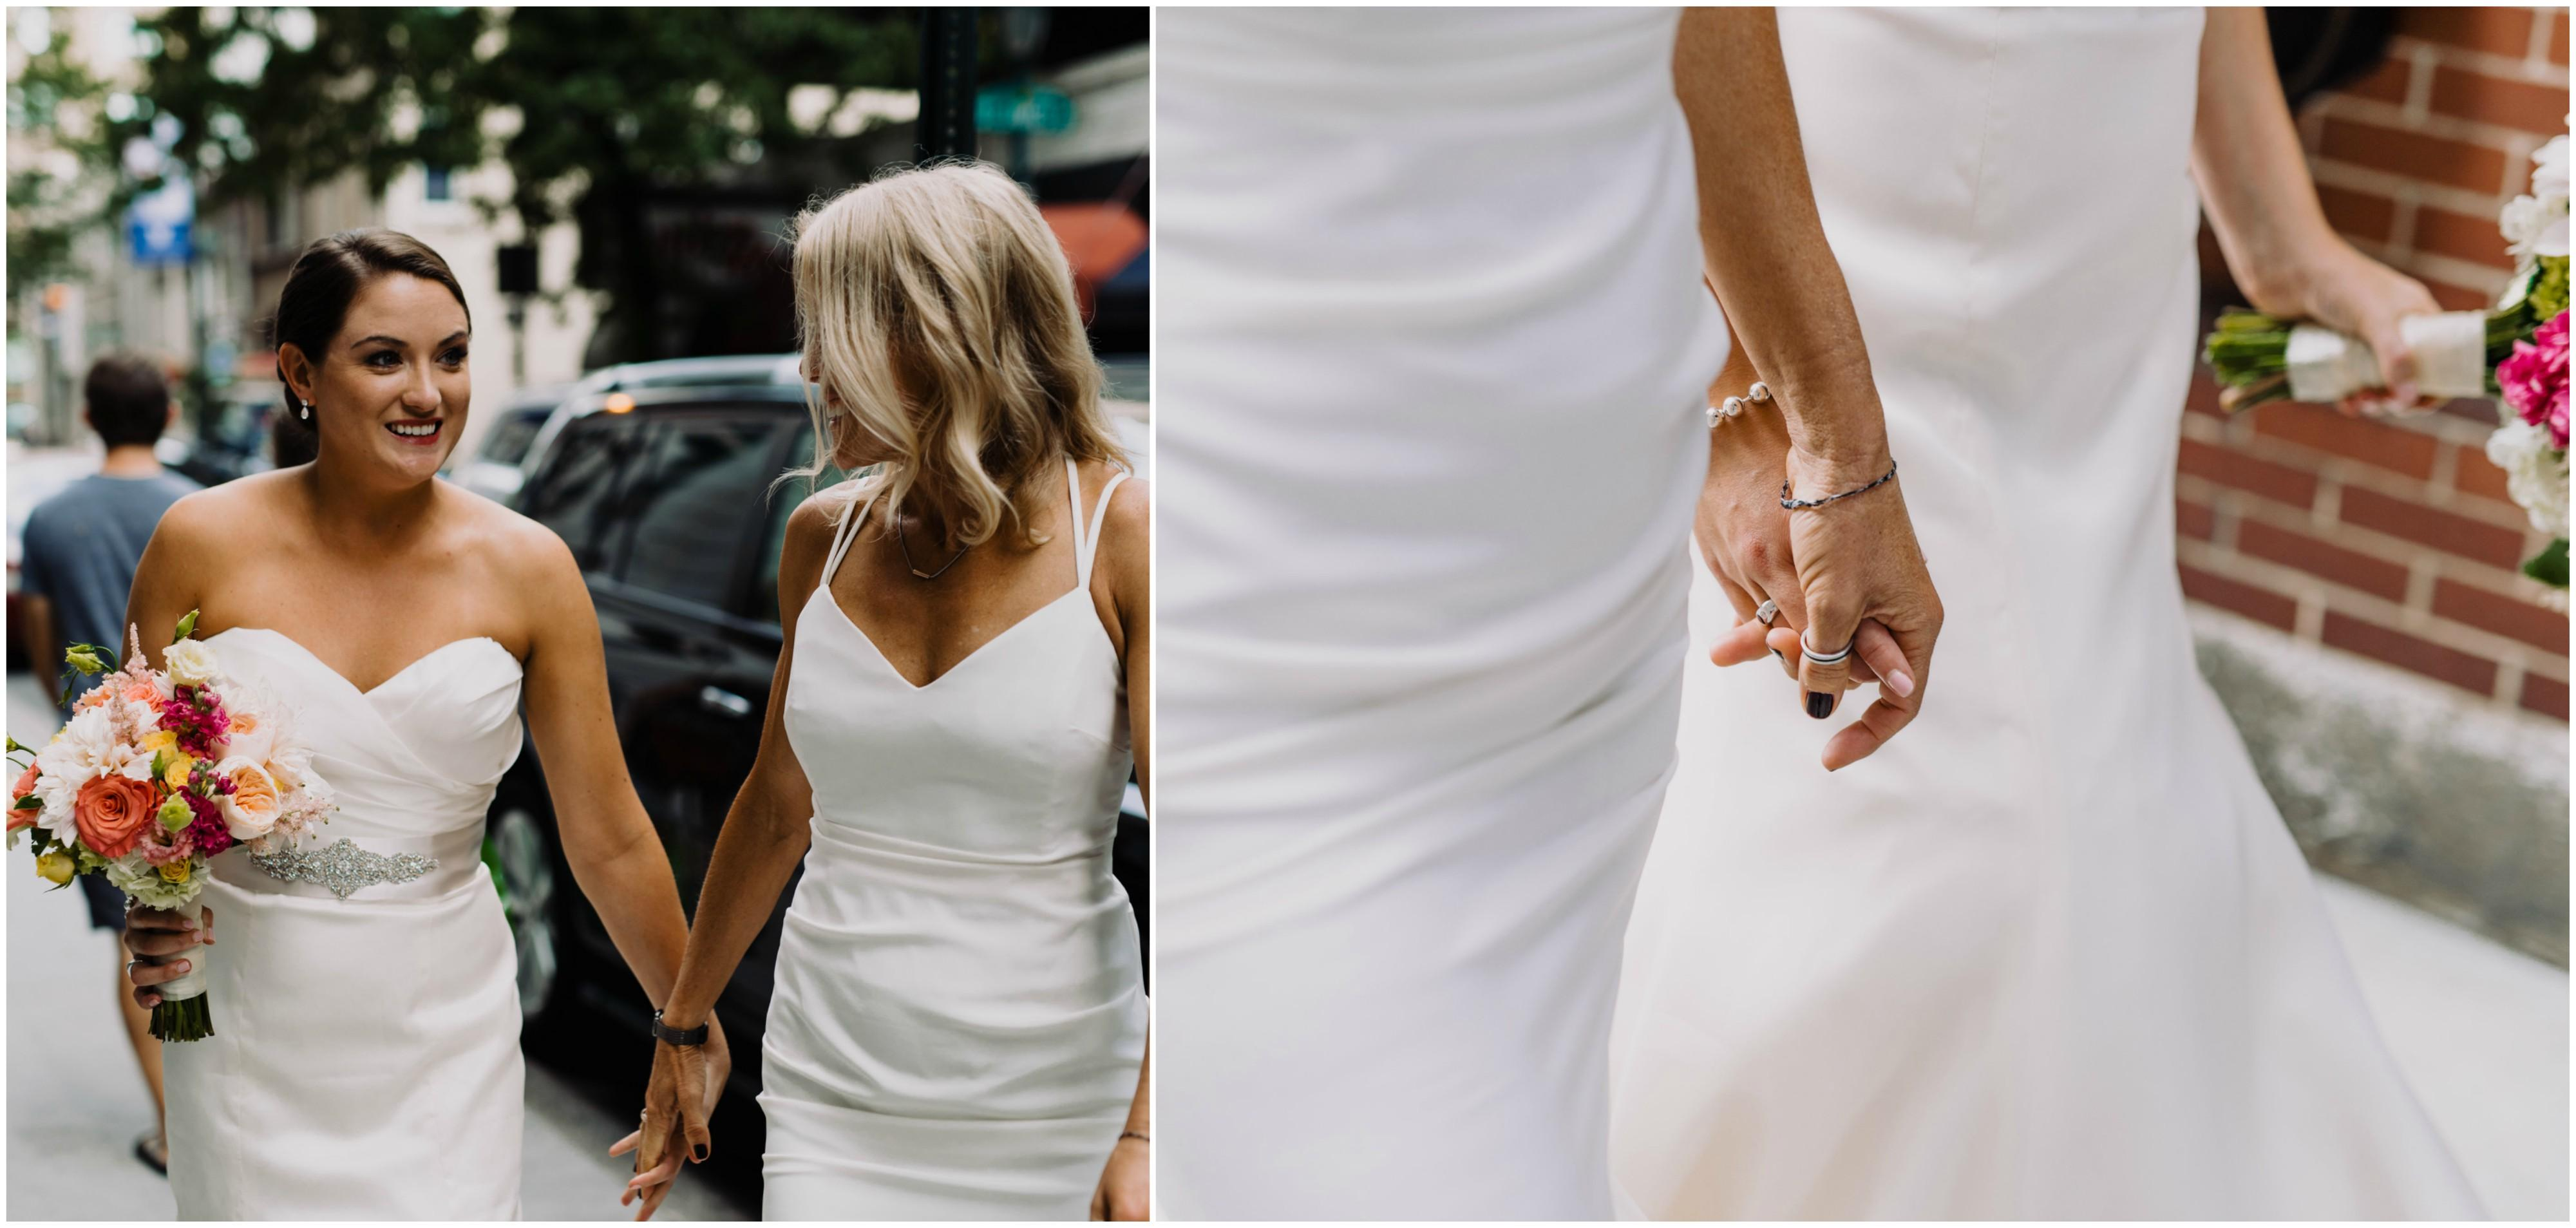 Shannon and Ruth\'s Intimate Wedding at Talula\'s Garden by Viva Love ...